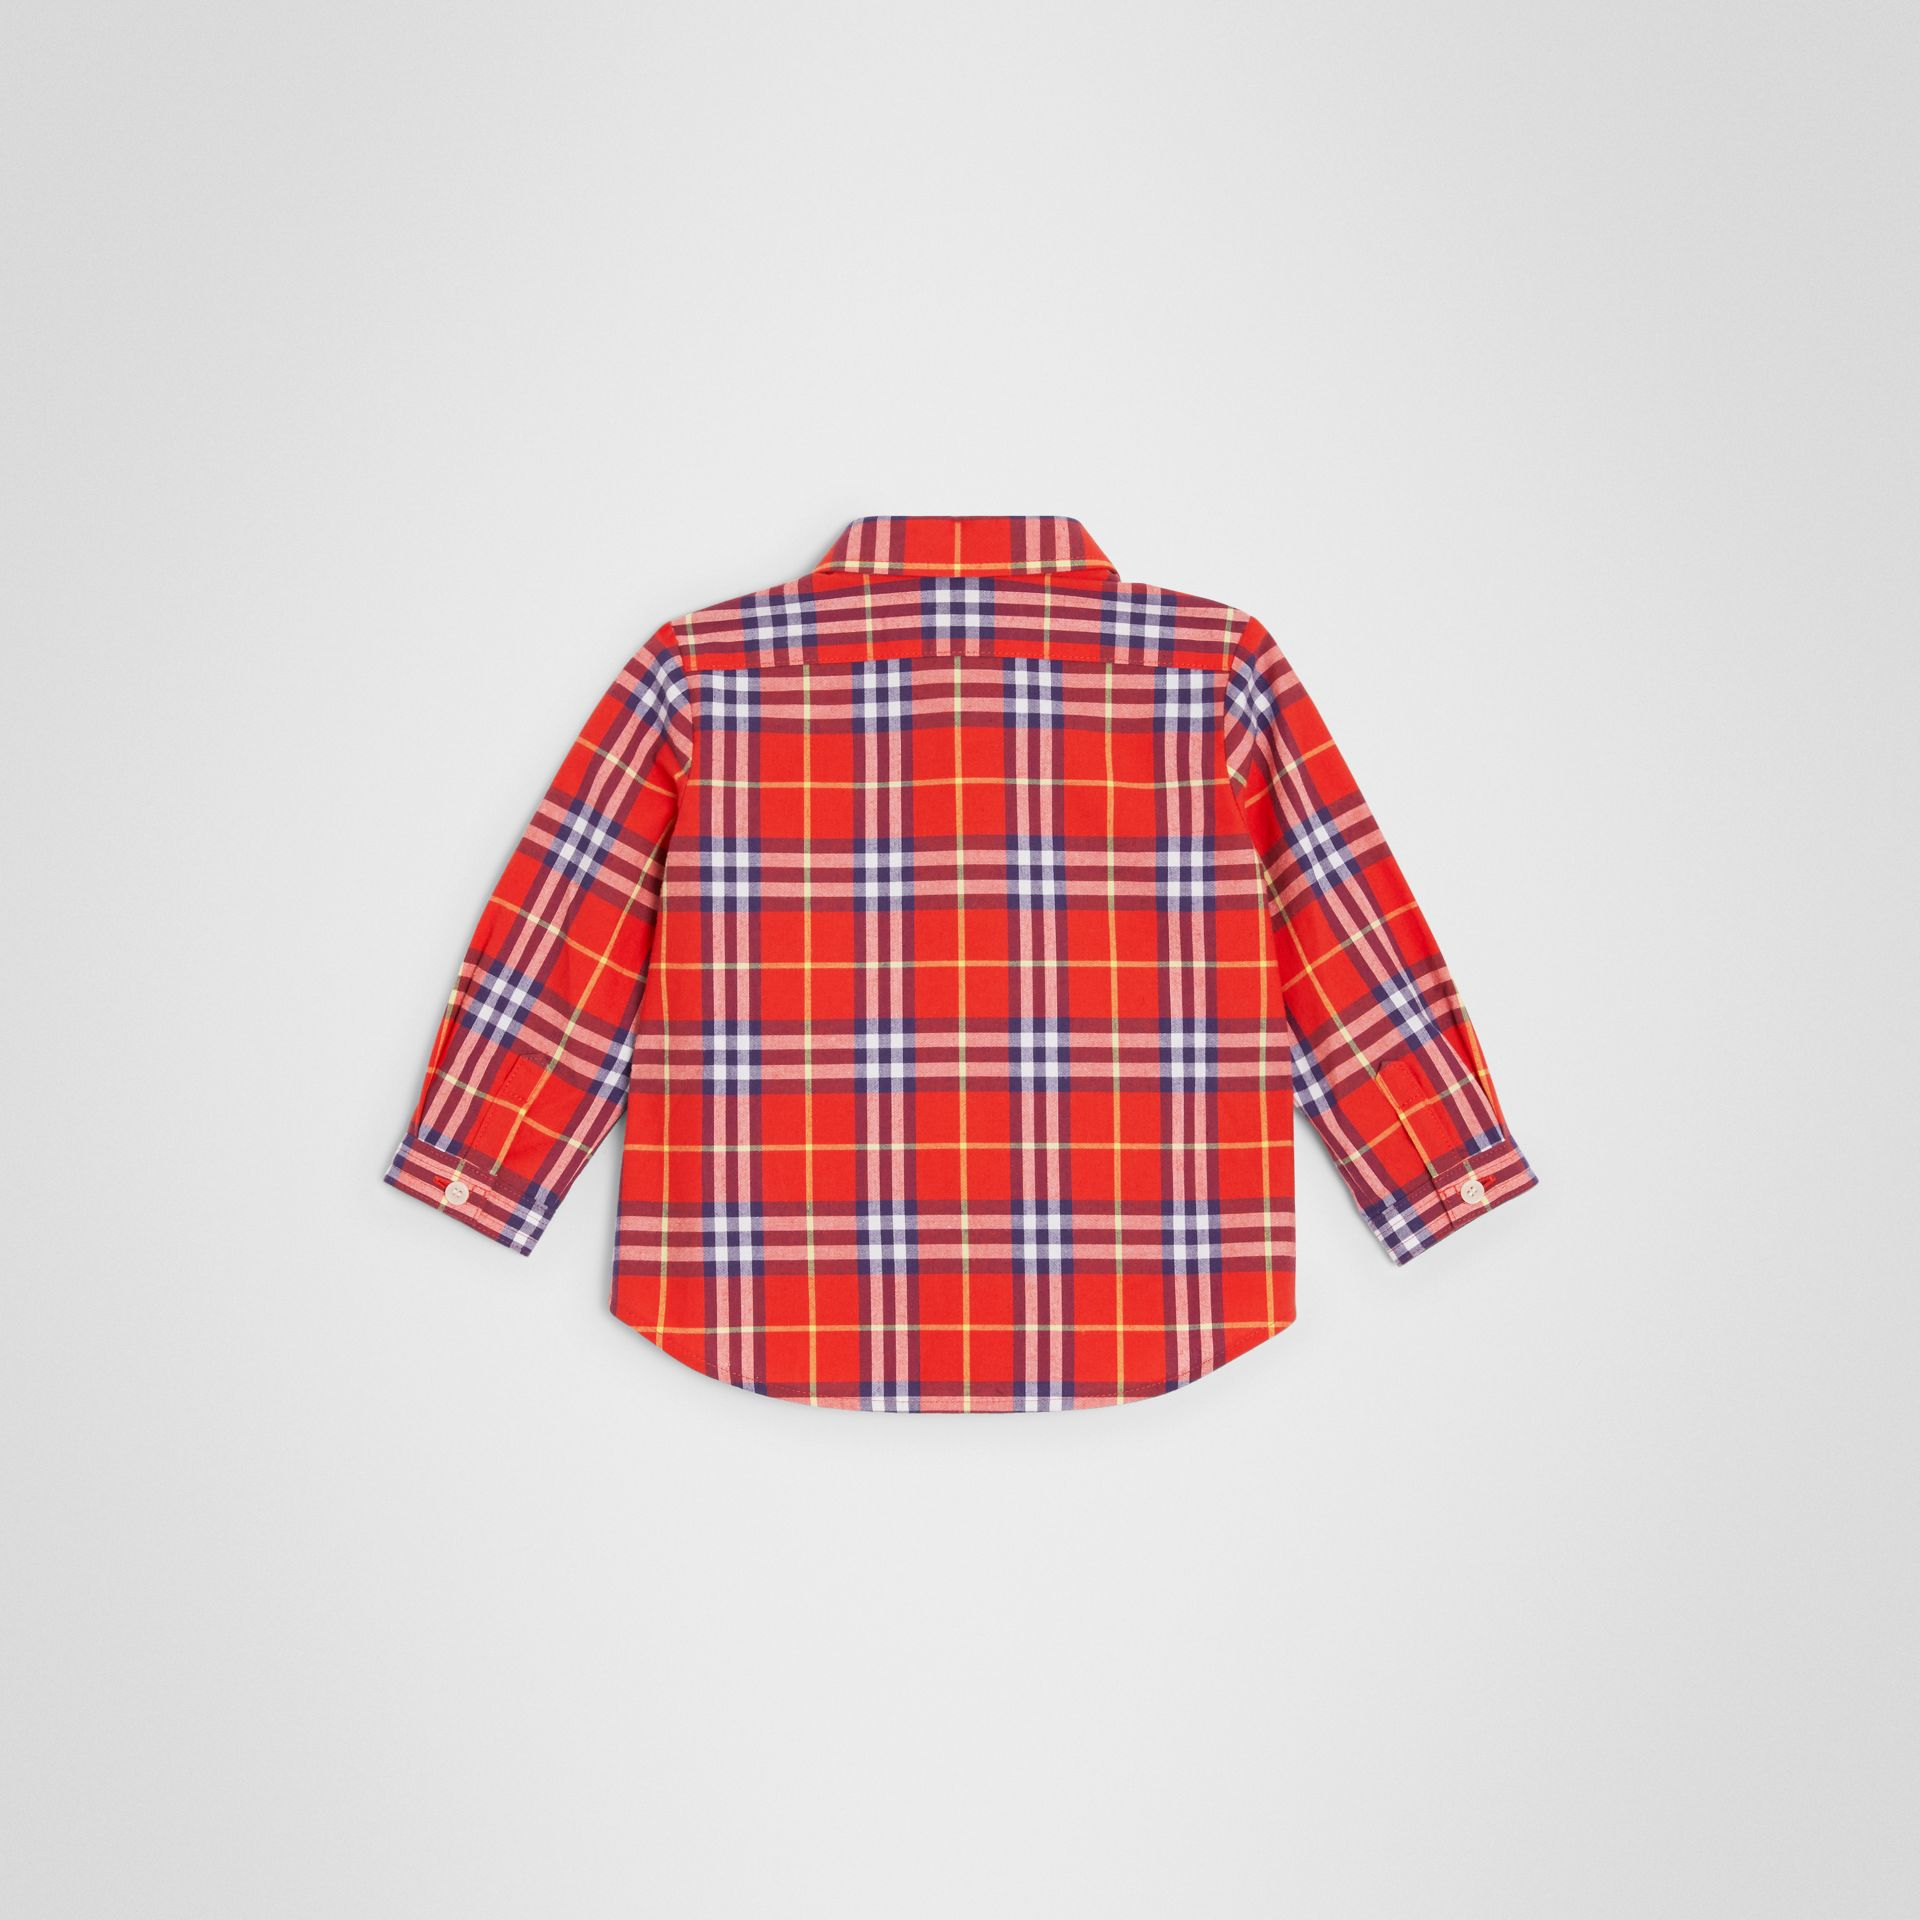 Button-down Collar Check Cotton Shirt in Orange Red | Burberry - gallery image 3